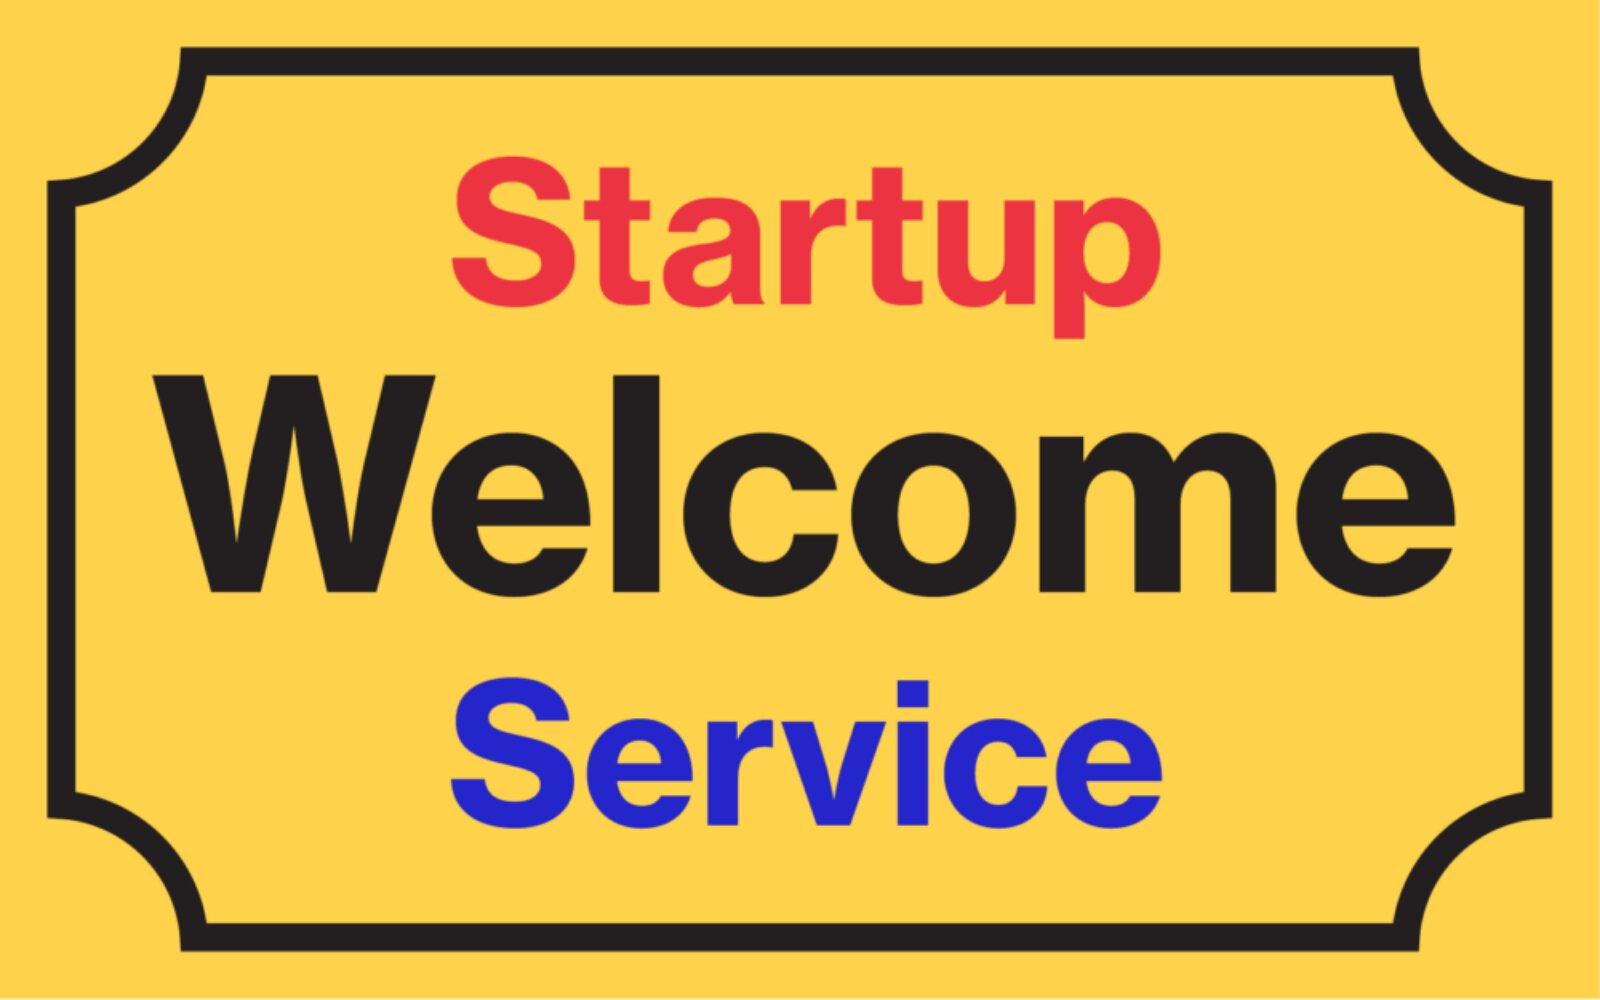 Startup Welcome Service